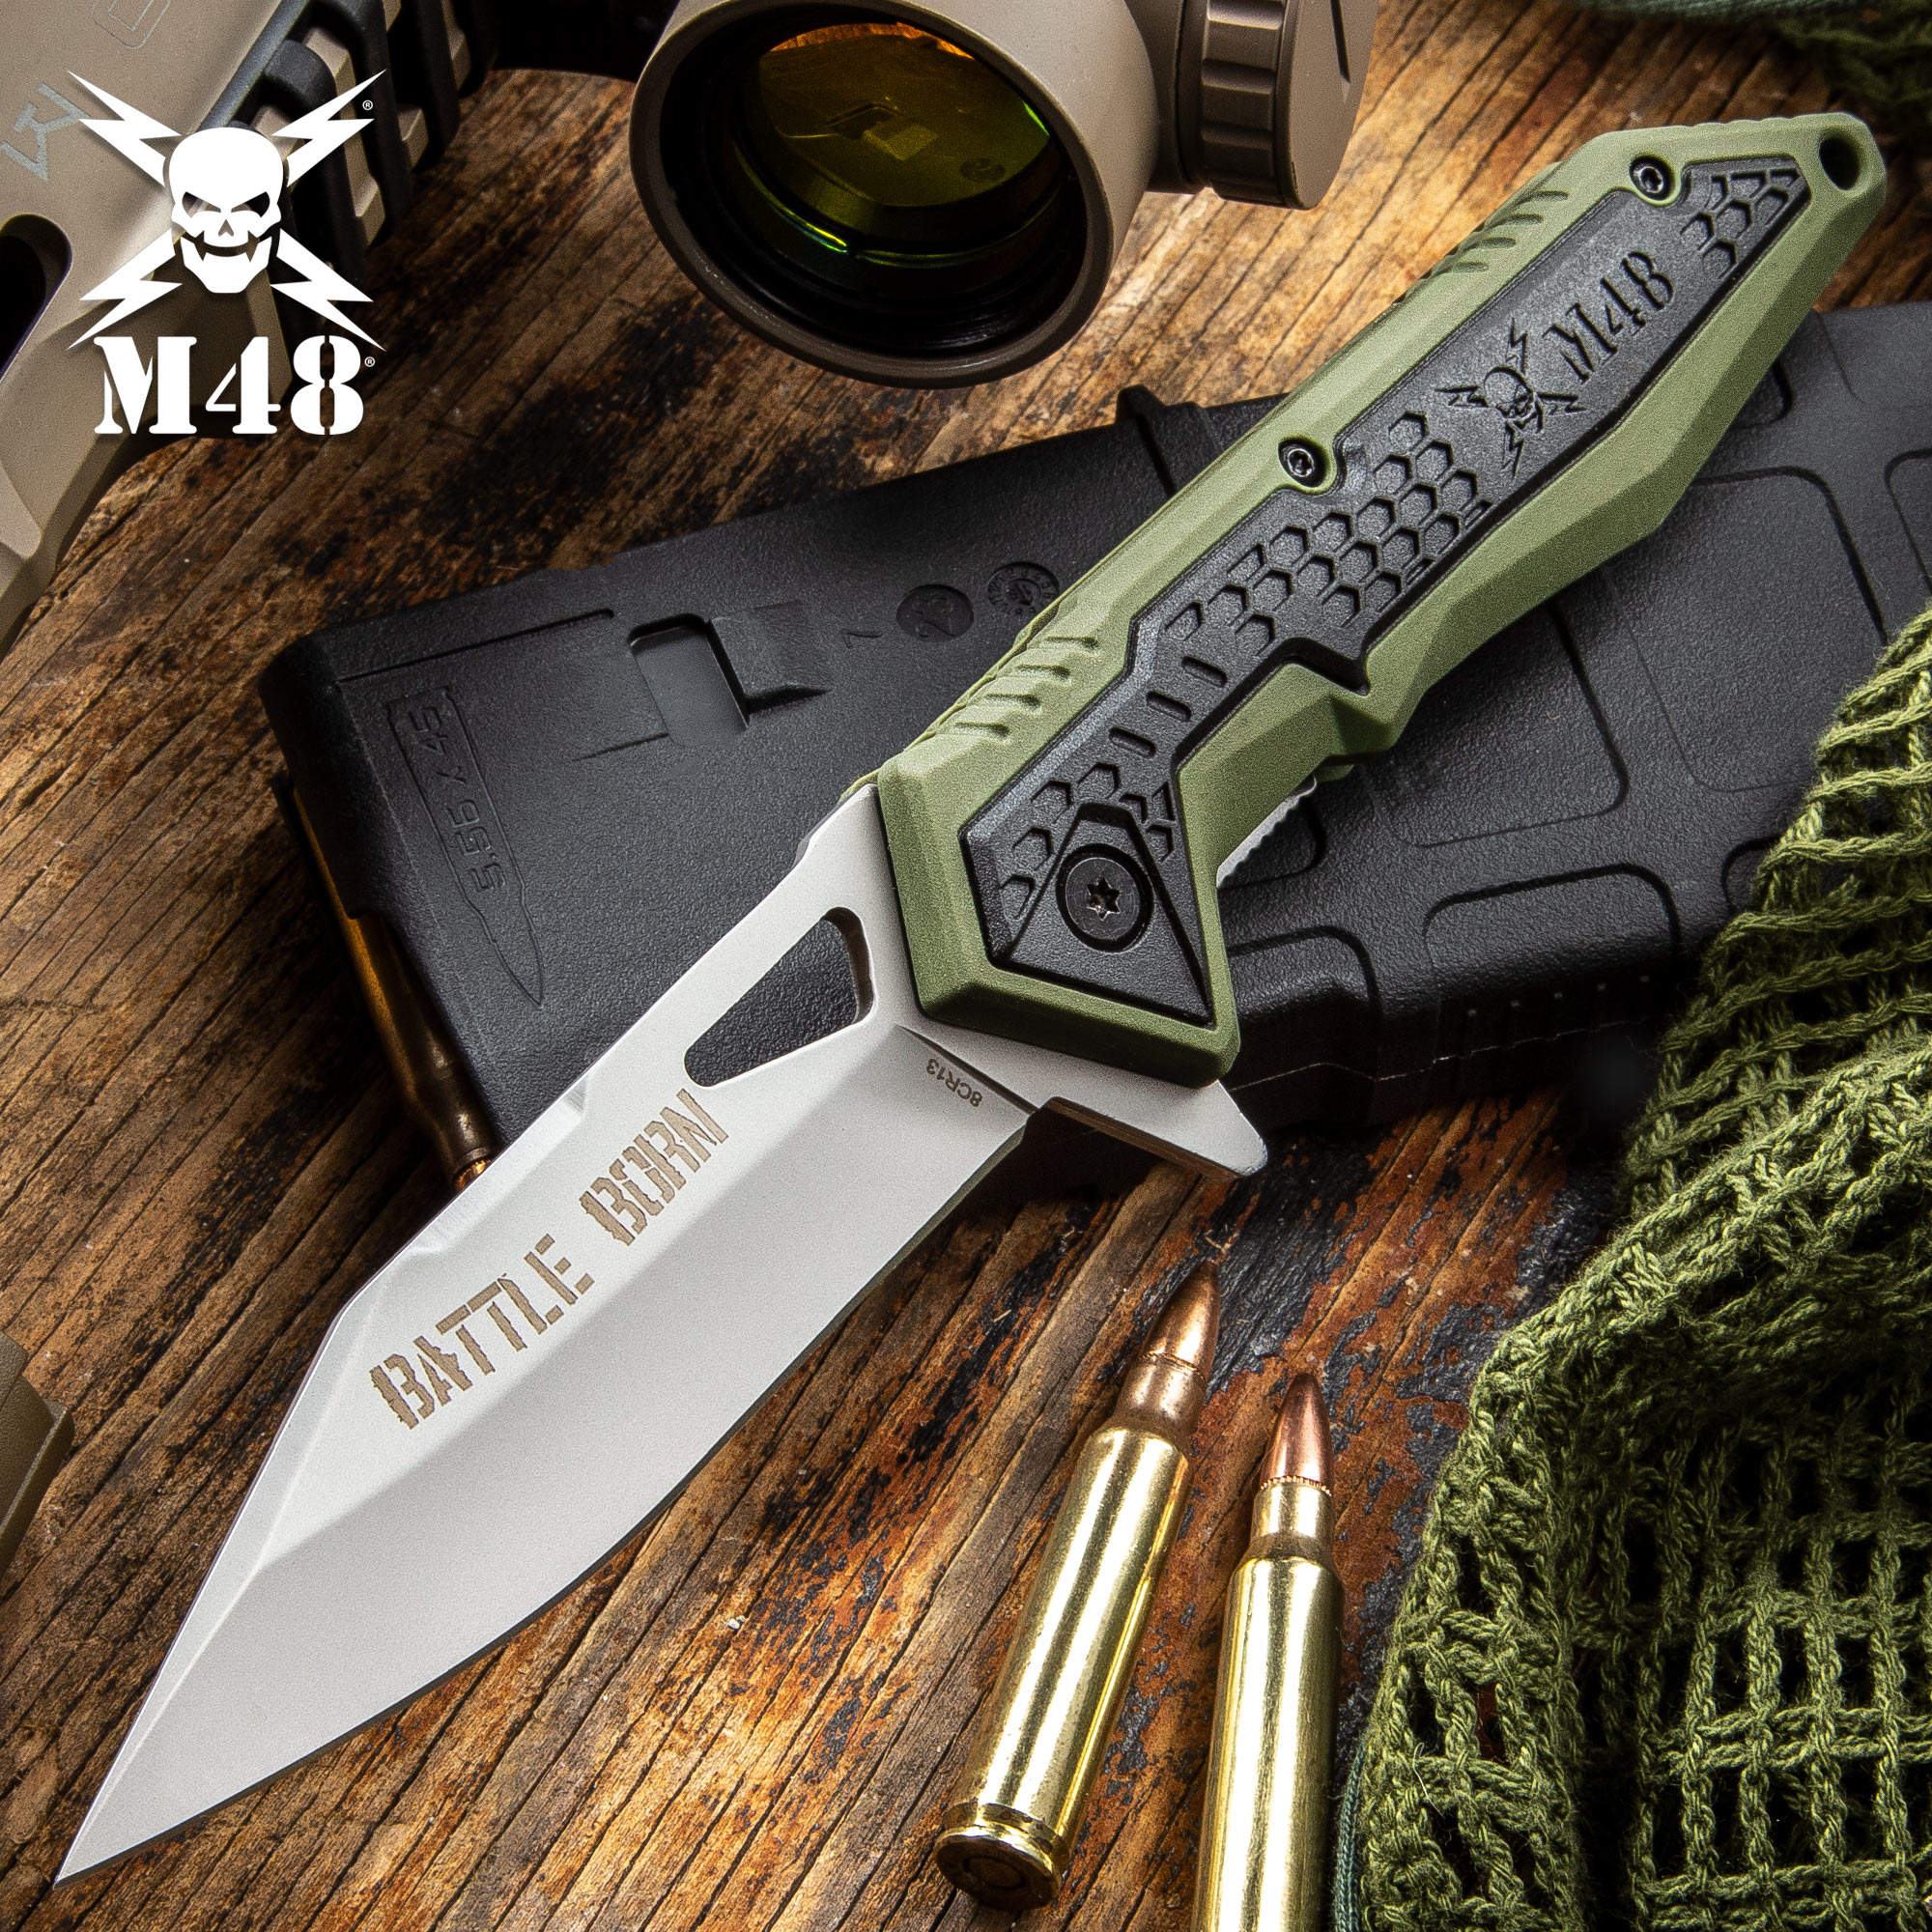 M48 Battle Born Pocket Knife - 8Cr13 Stainless Steel Blade, Olive Drab TPR  Handle Scales, Ball Bearing, Pocket Clip